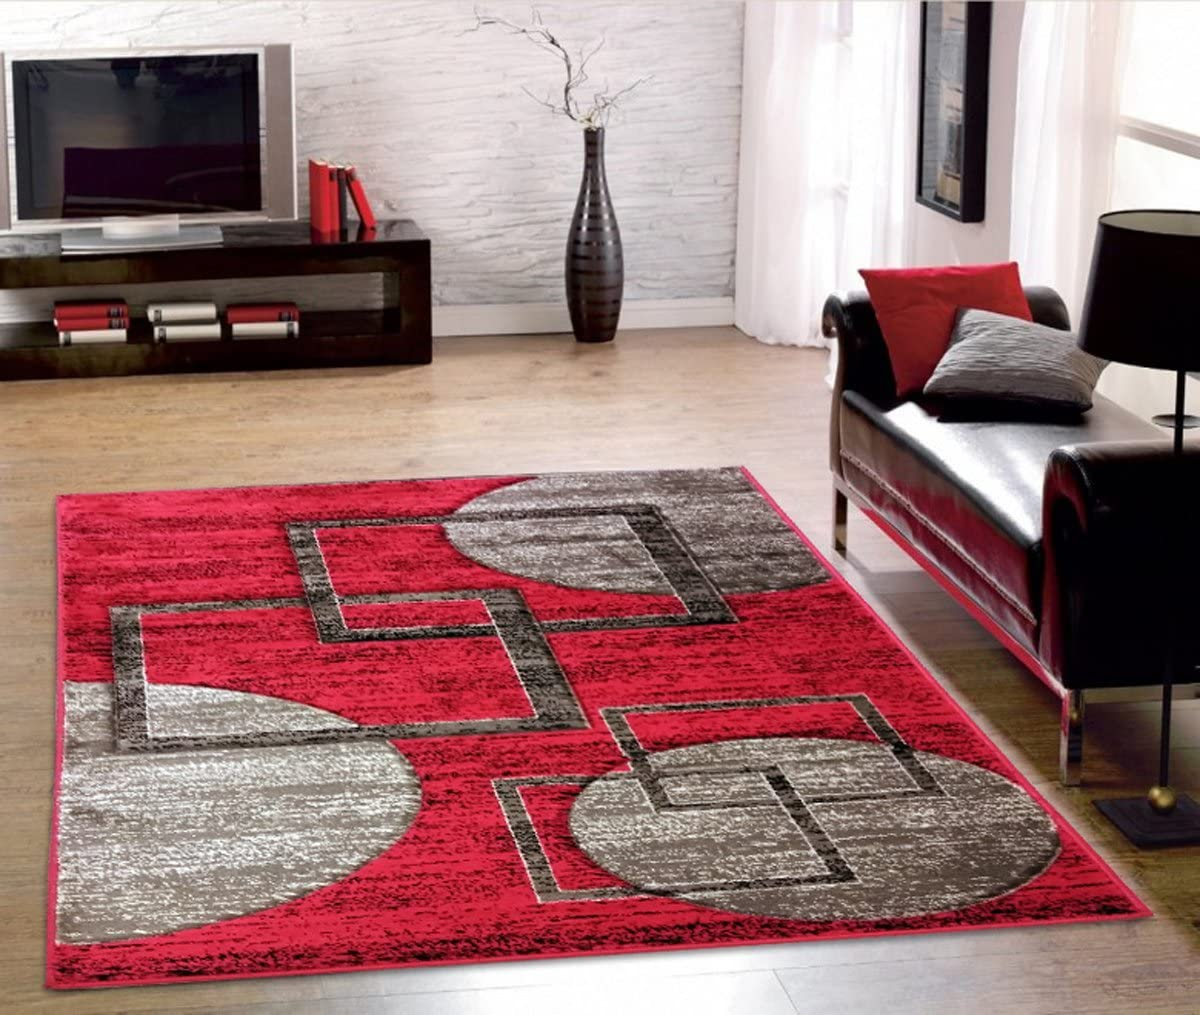 ADGO Atlantic Collection Modern Contemporary Abstract Geometric Circles and Square Red and Grey Living Dining Room Area Rug 8 x 10